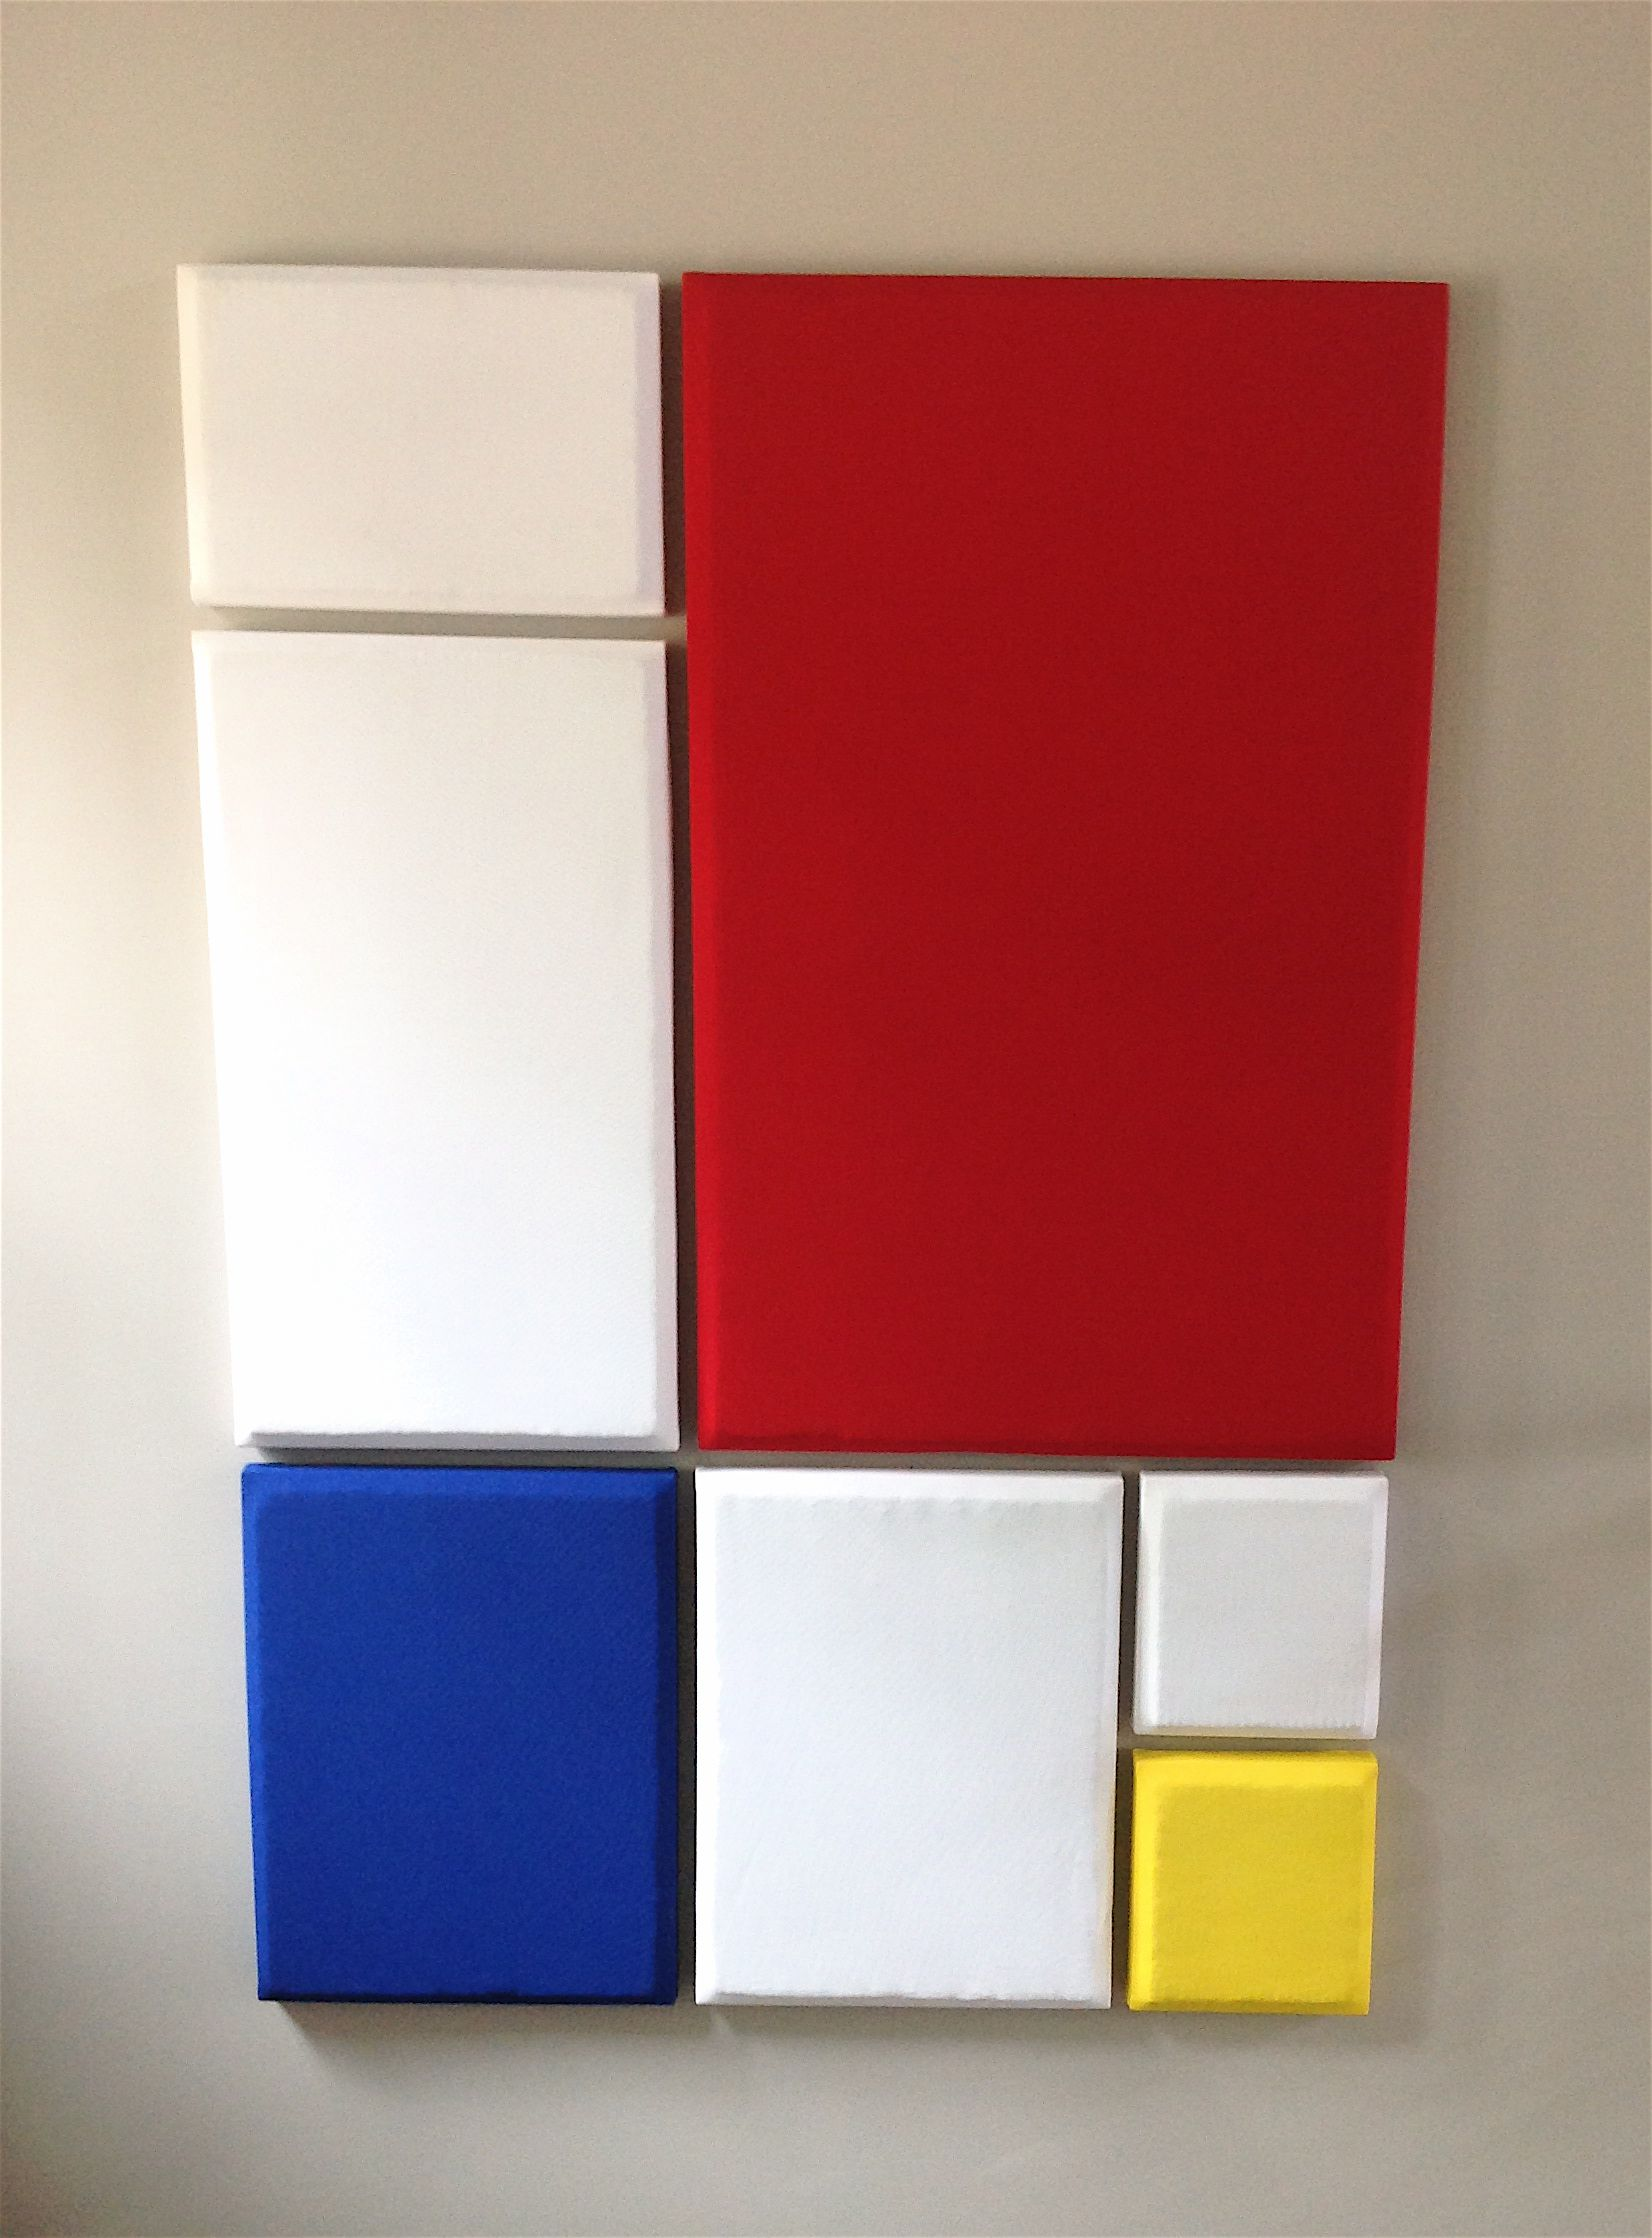 Diy Soundproof Room Divider Acoustic Absorption Panels Masquerading As Mondrian Art